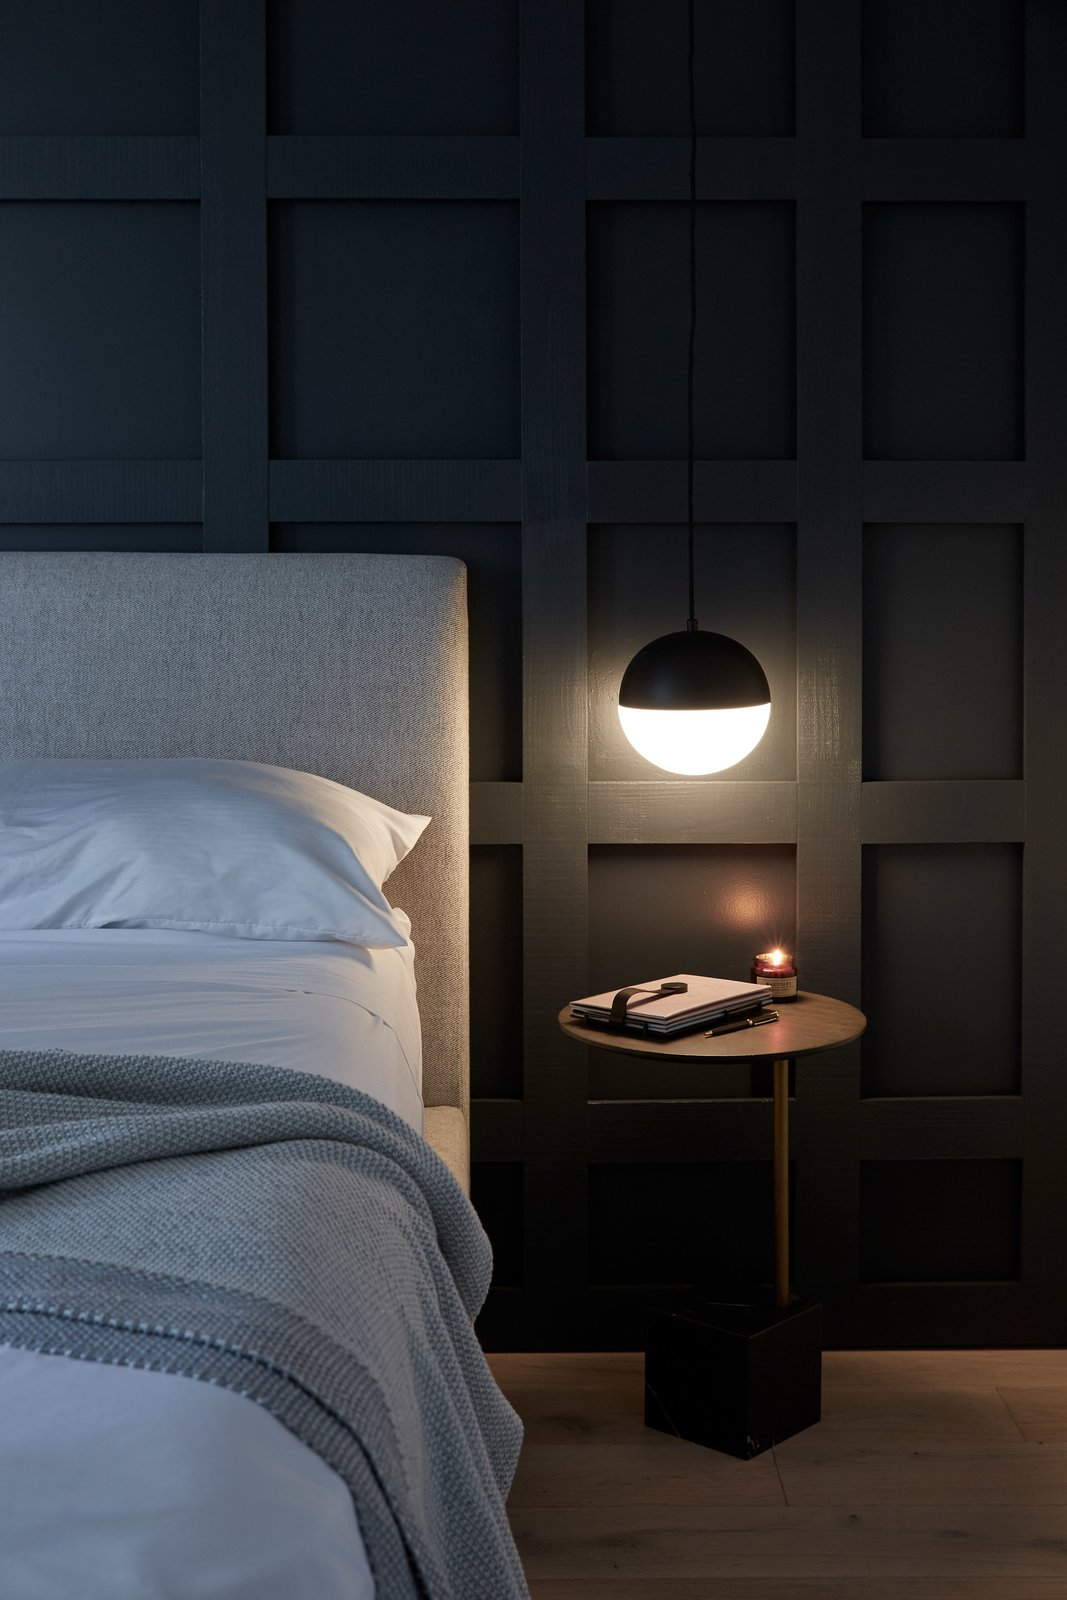 Bedroom, Bed, Night Stands, Pendant Lighting, and Light Hardwood Floor Contrasting black and white orb pendants on both sides of the bed provide warm light for bedtime reading or for writing in the guest journal.  Normal Heights Residence